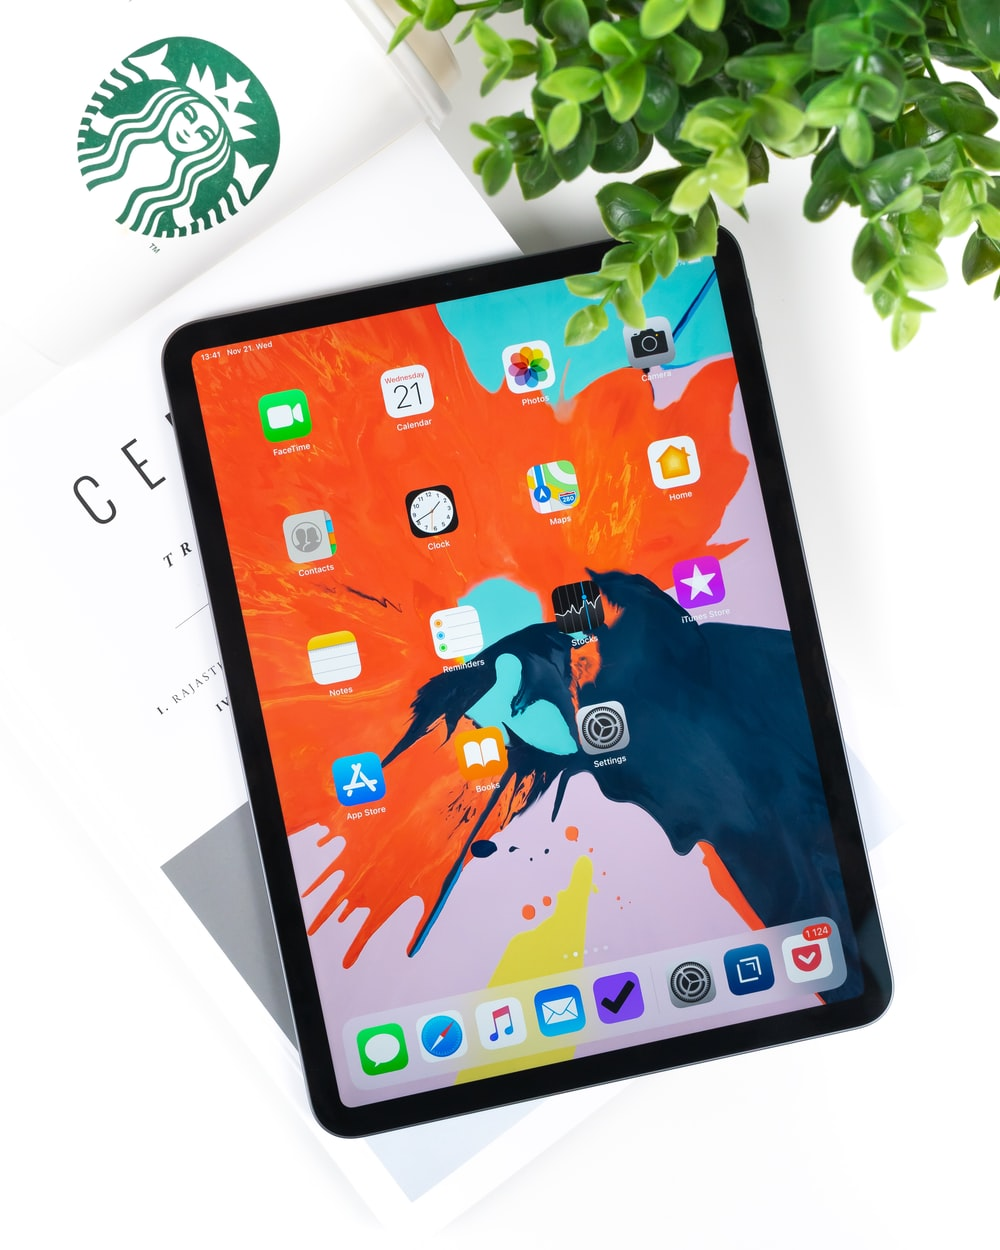 space gray iPad Pro on top of book